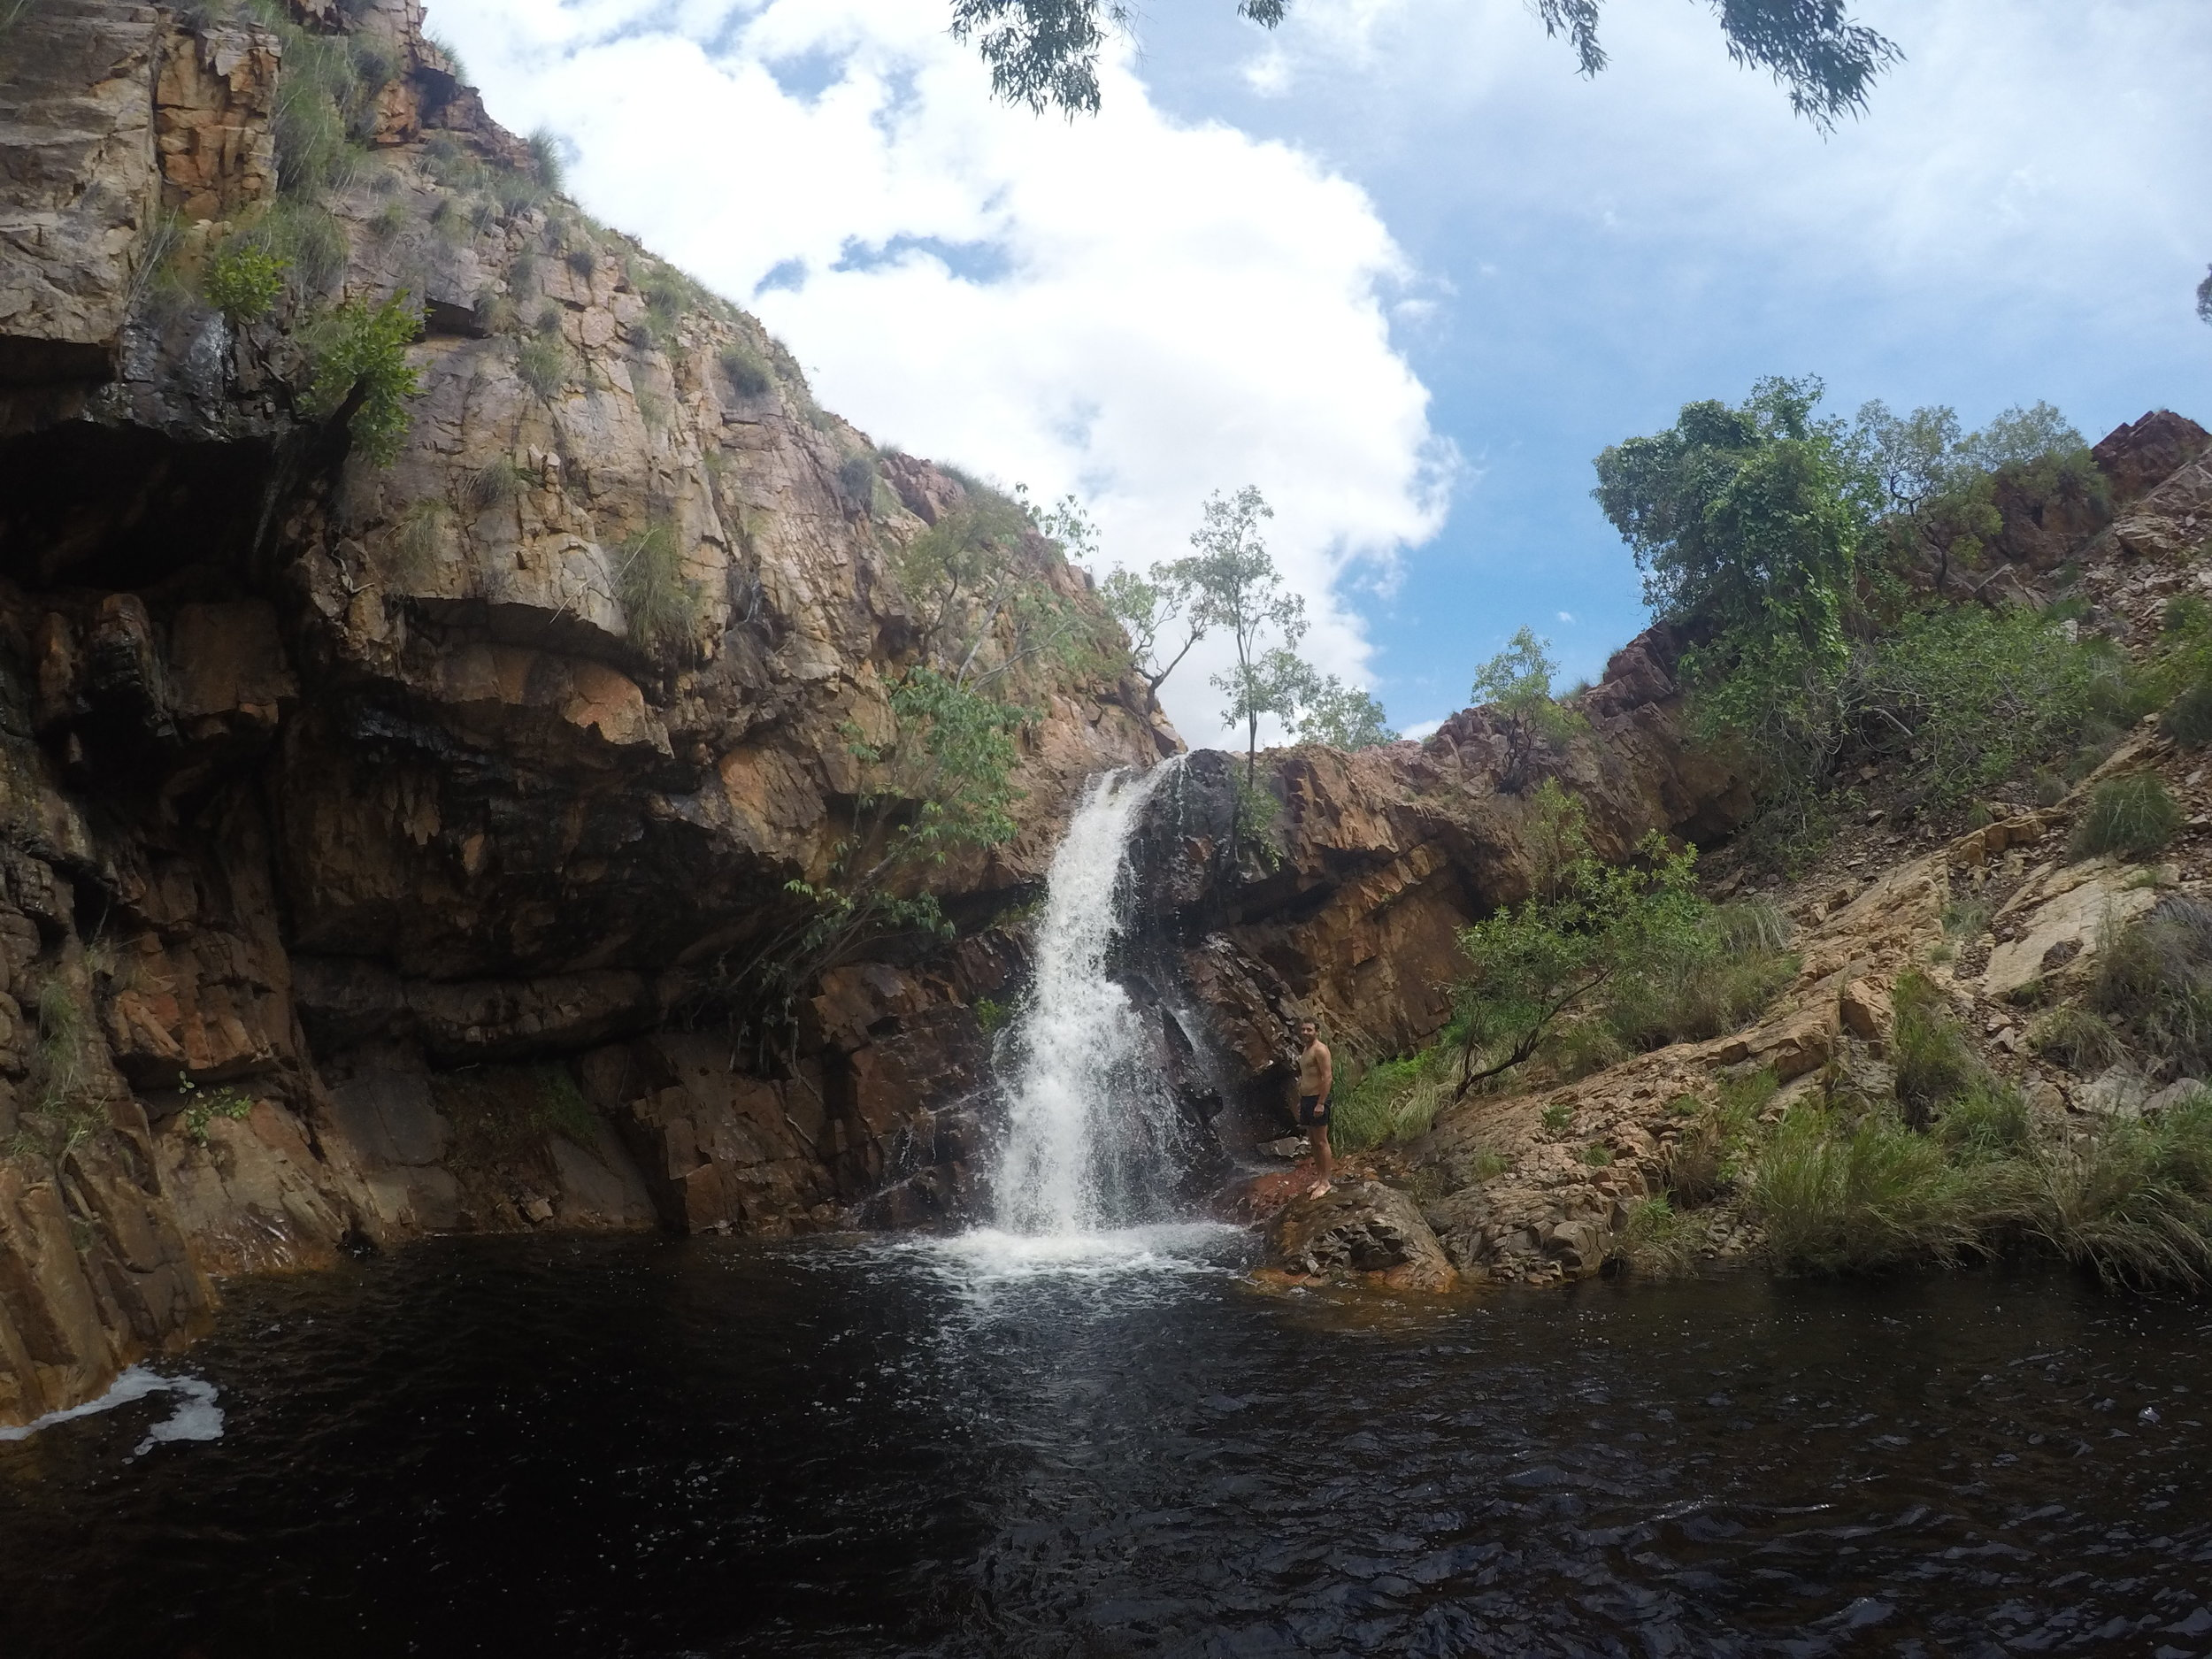 Adam checking out a Kimberley waterfall in the wet season